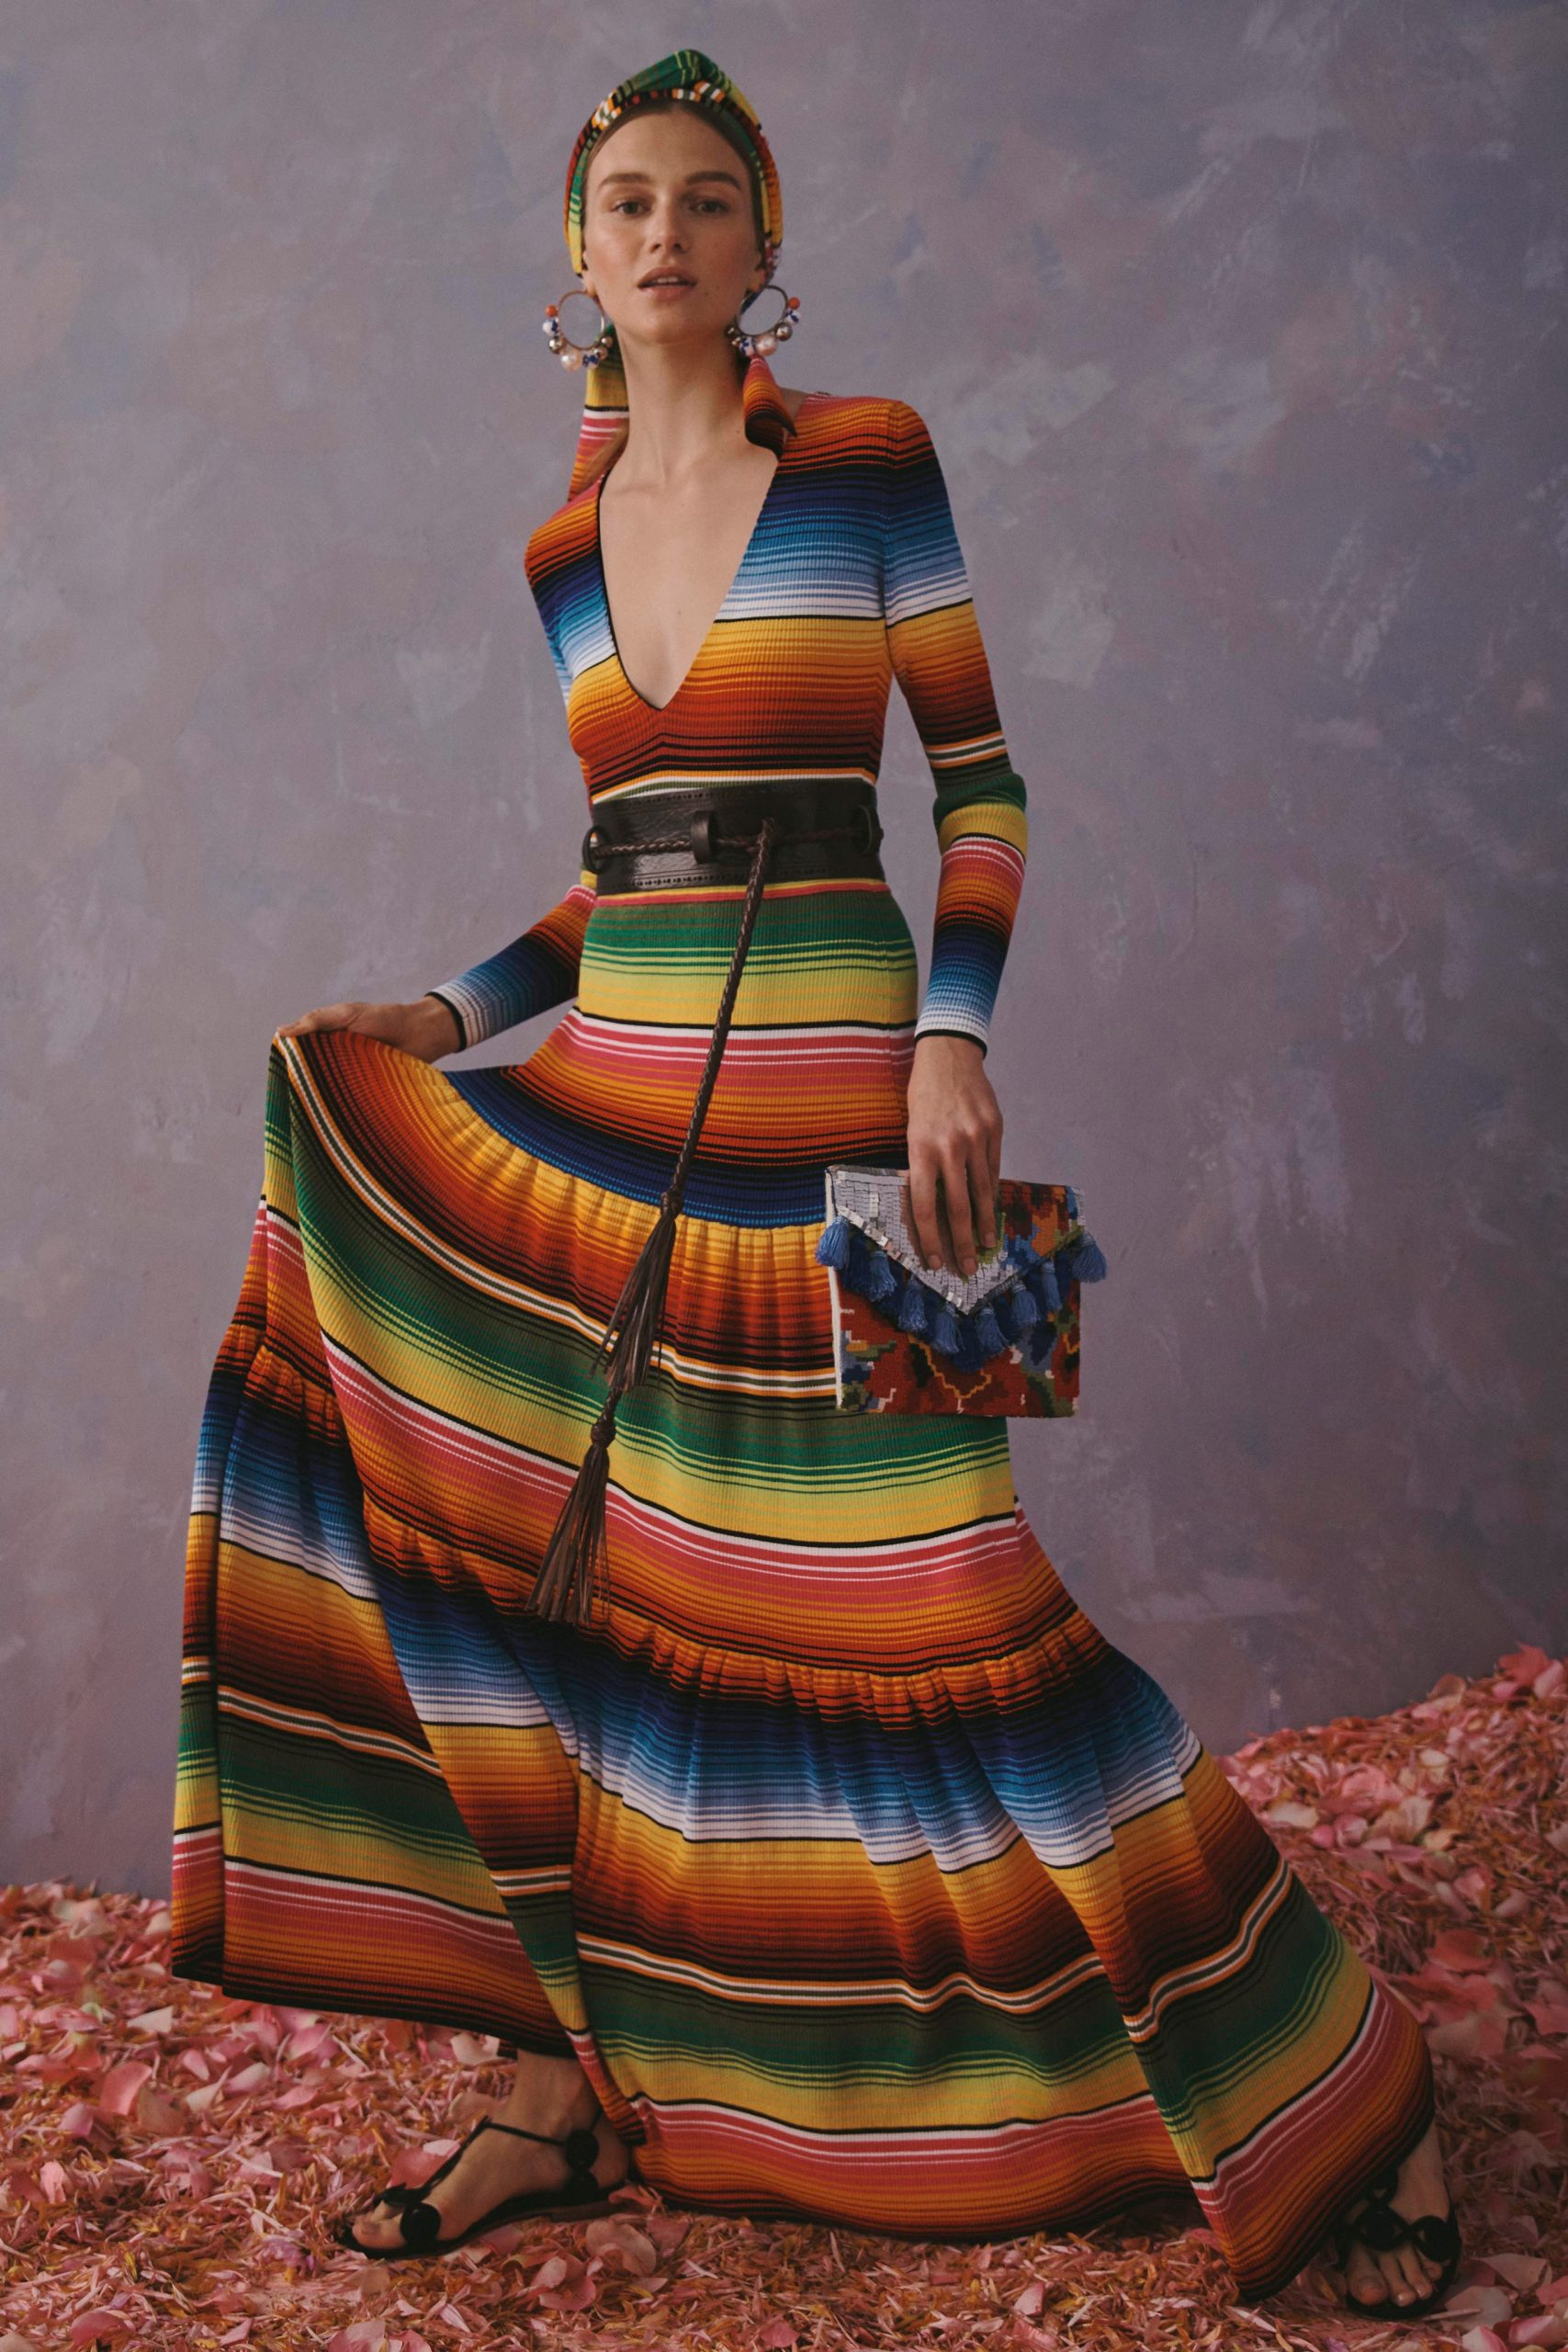 model wearing a dress with horizontal, multi-coloured stripes